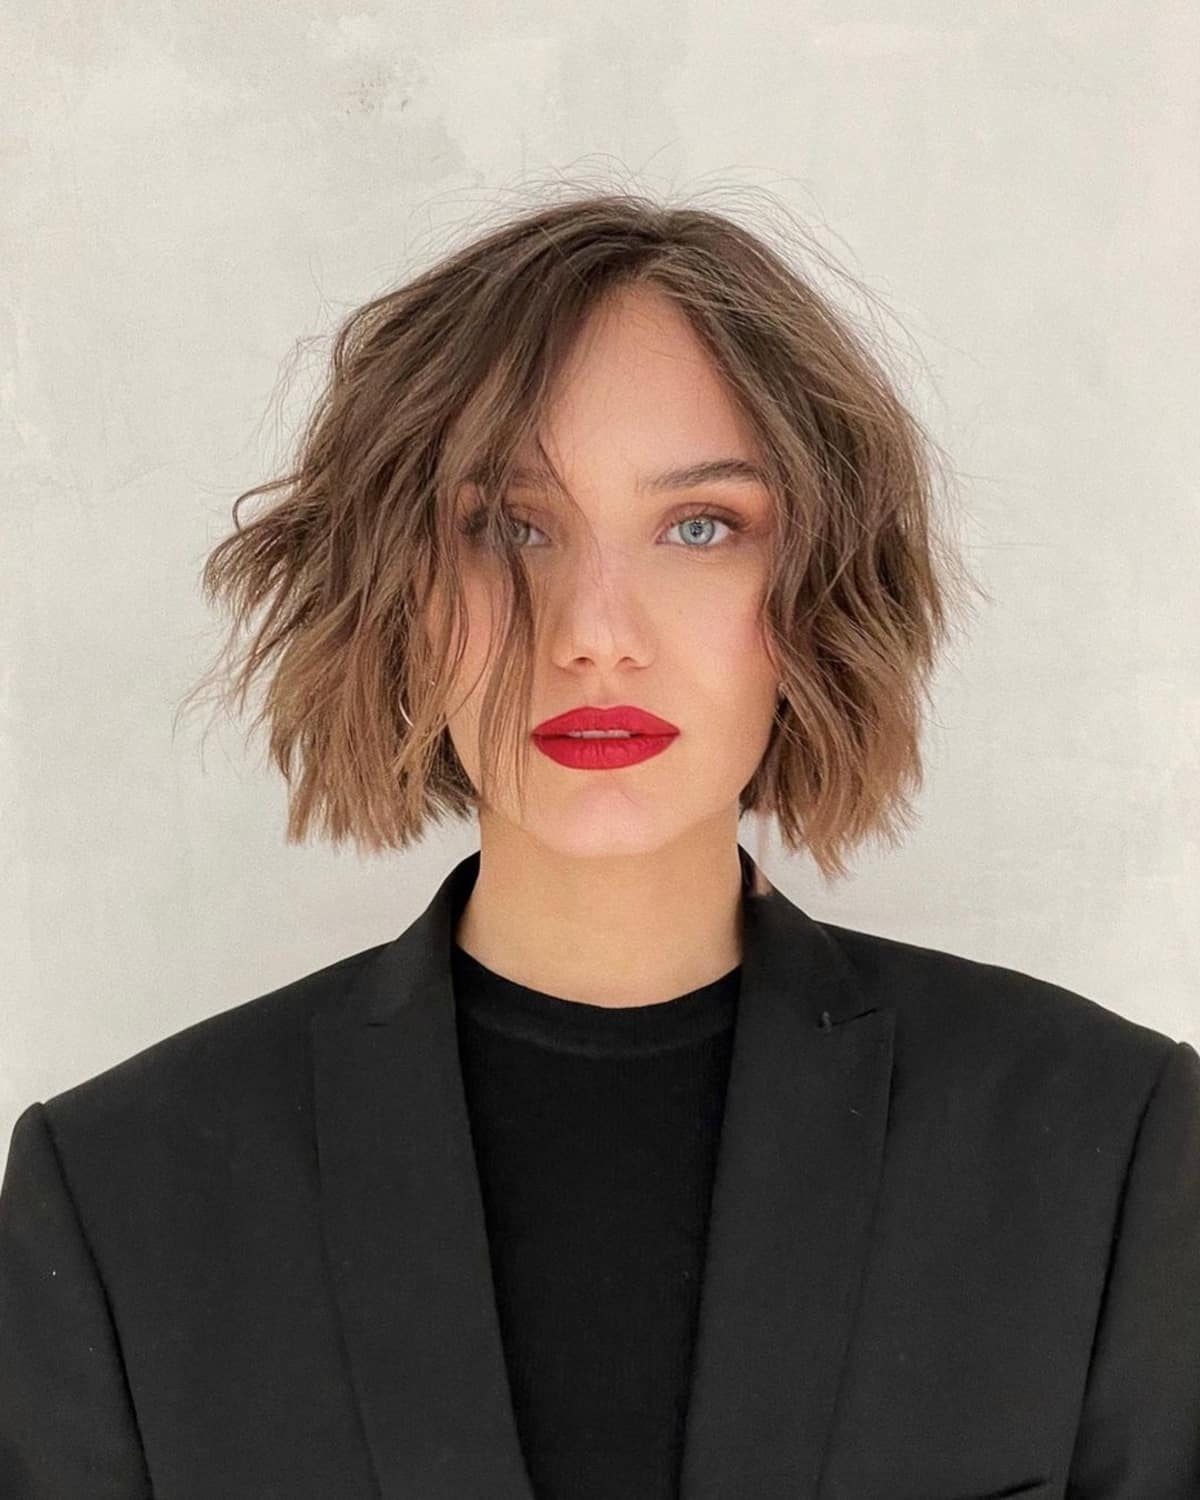 18 Most Popular Short Layered Bob Haircuts That Are Easy to Style